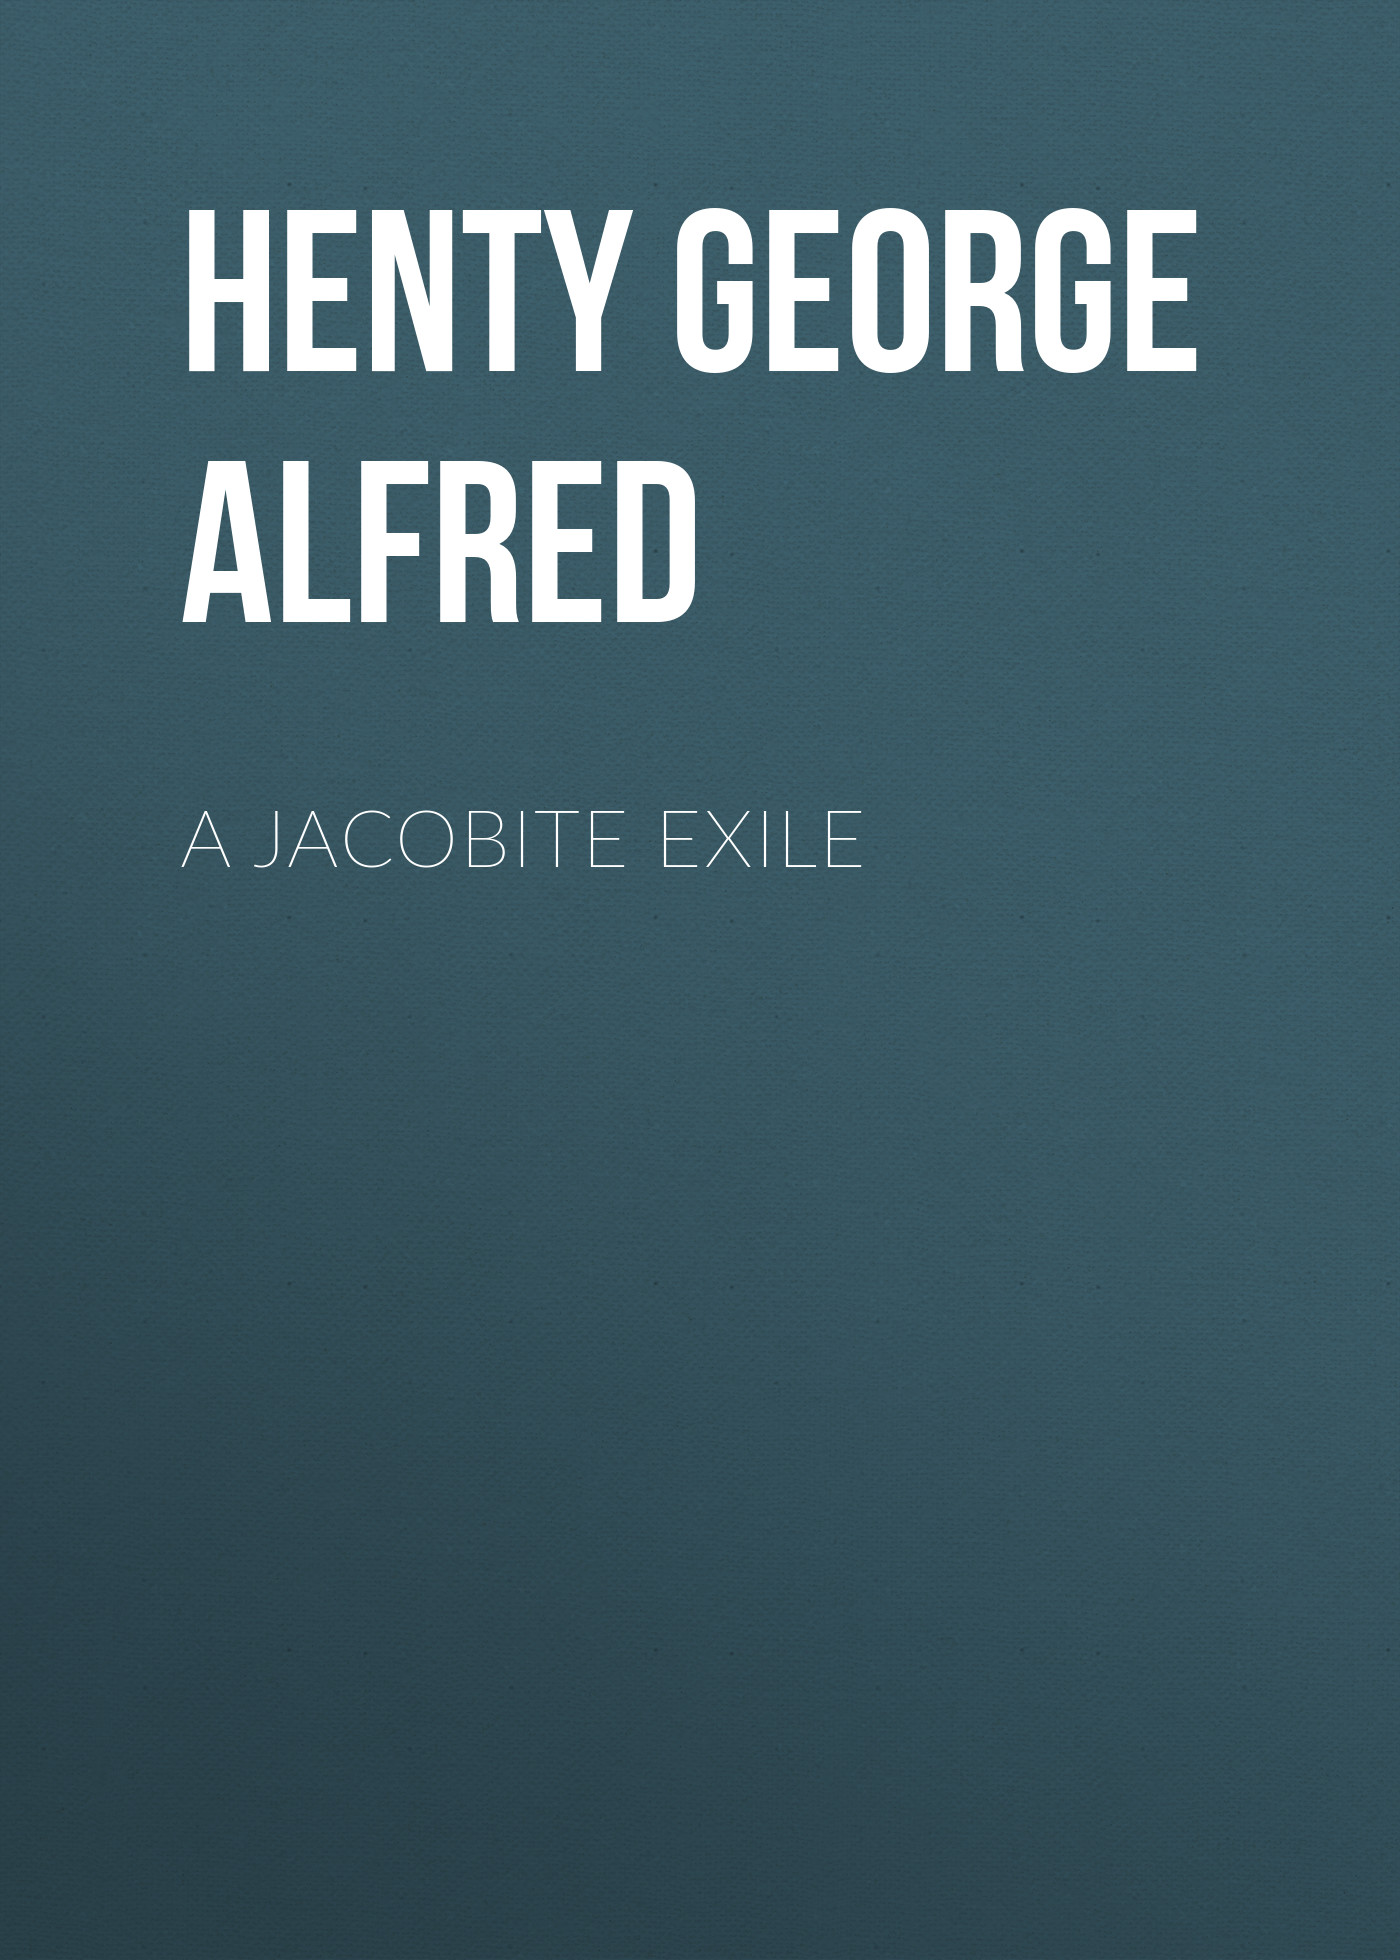 Henty George Alfred A Jacobite Exile